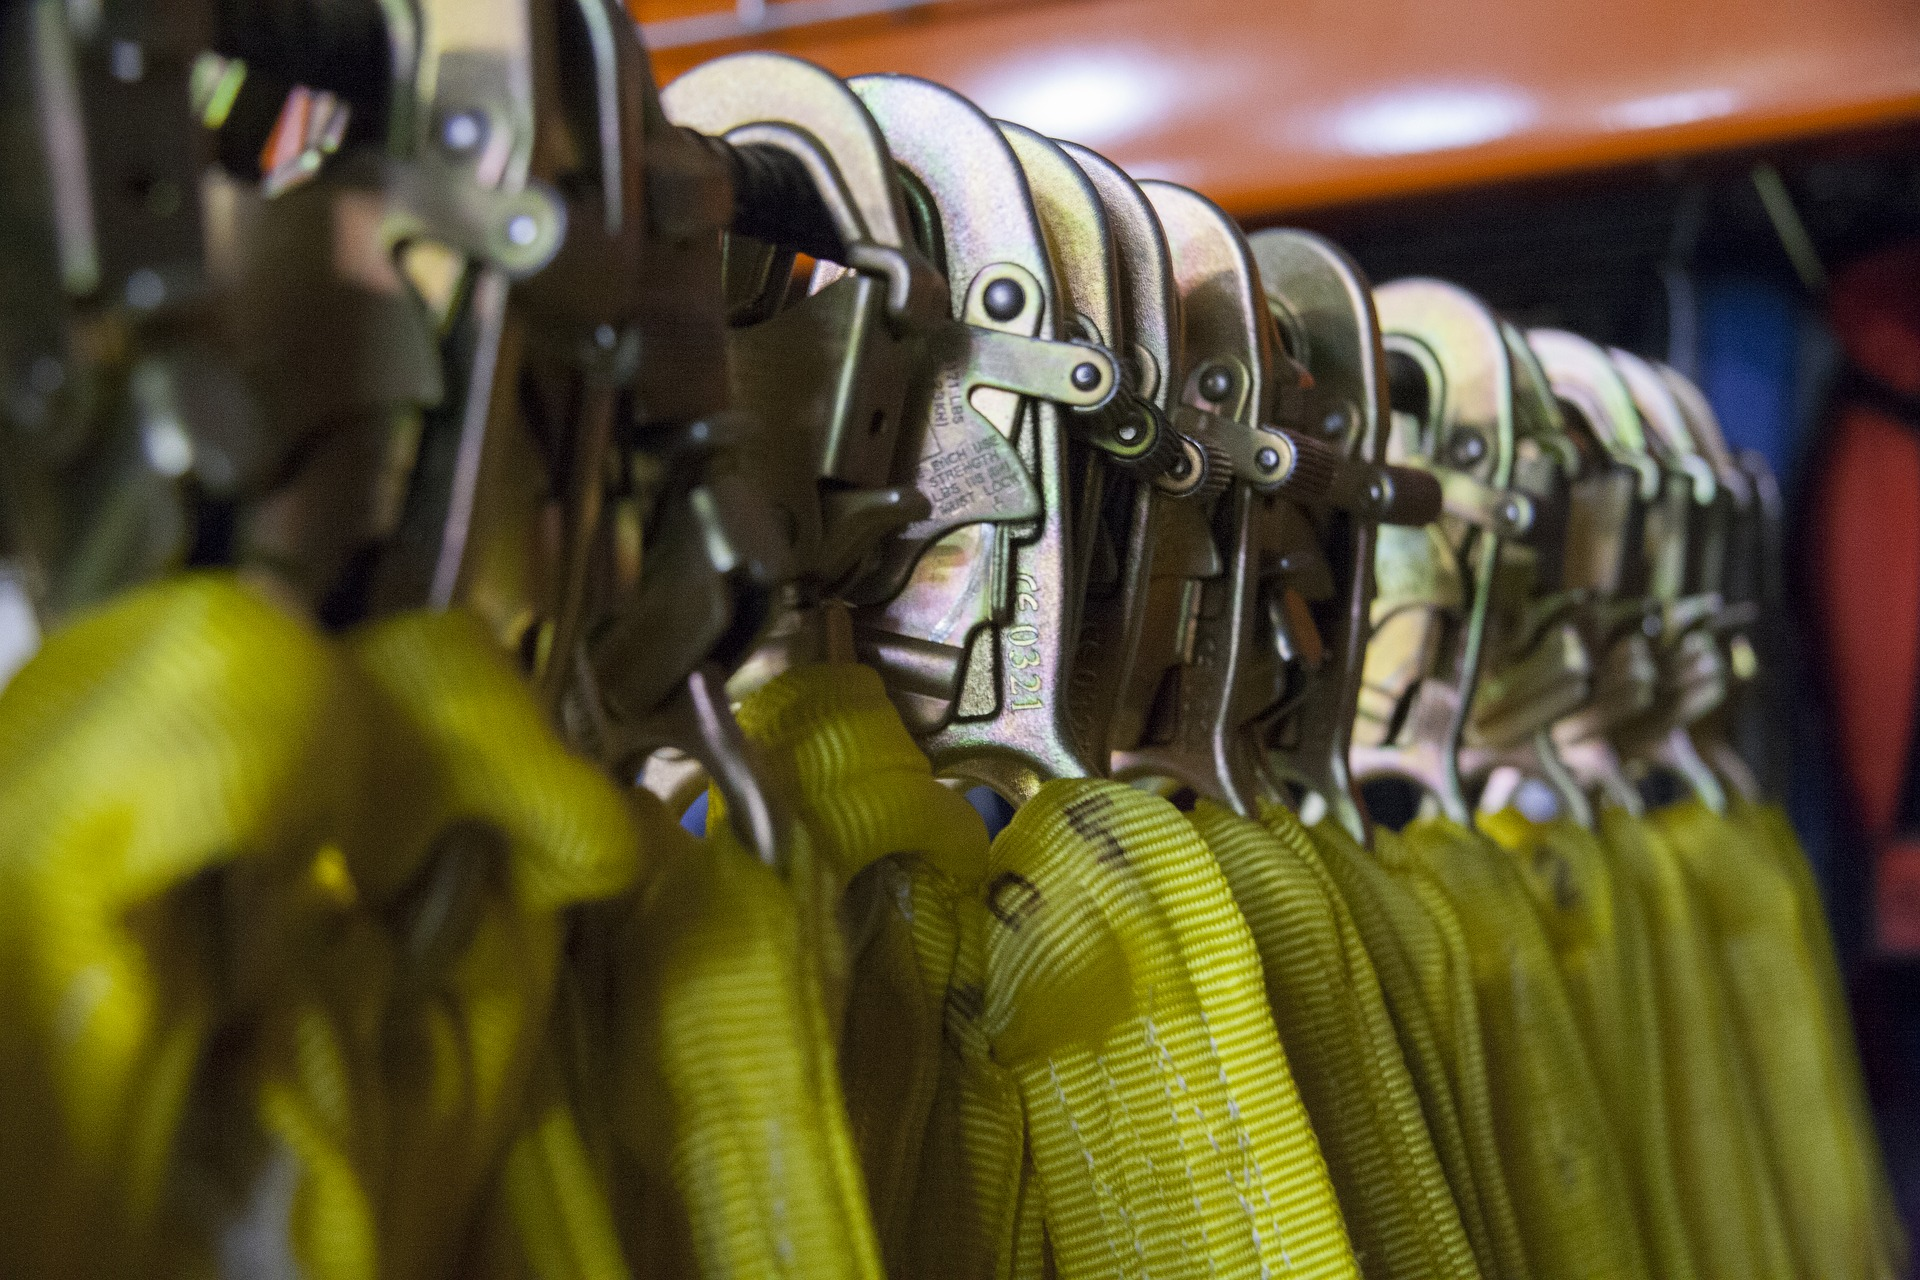 Safety hook PPE lined up.